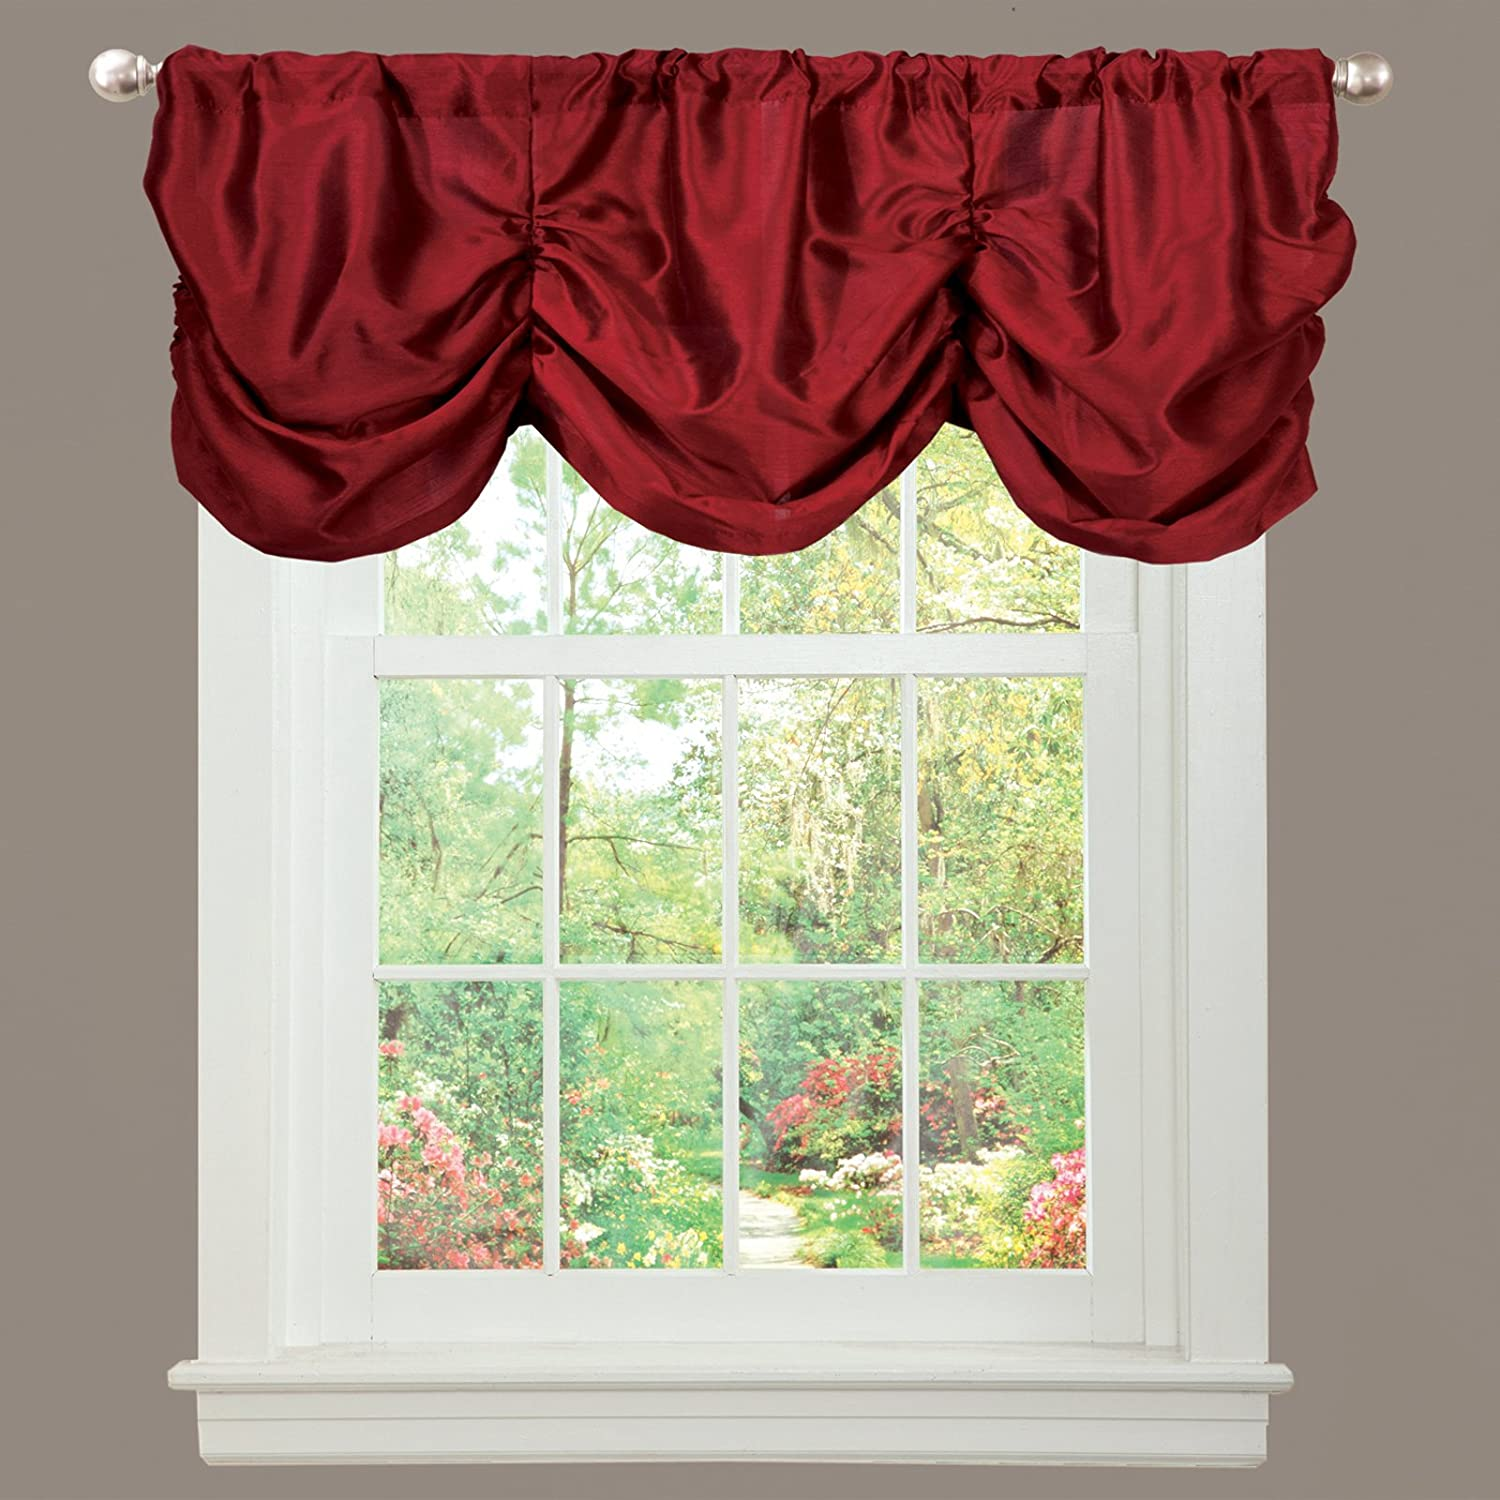 patterned cotton world of voile product crinkle do set curtain red xxx market curtains